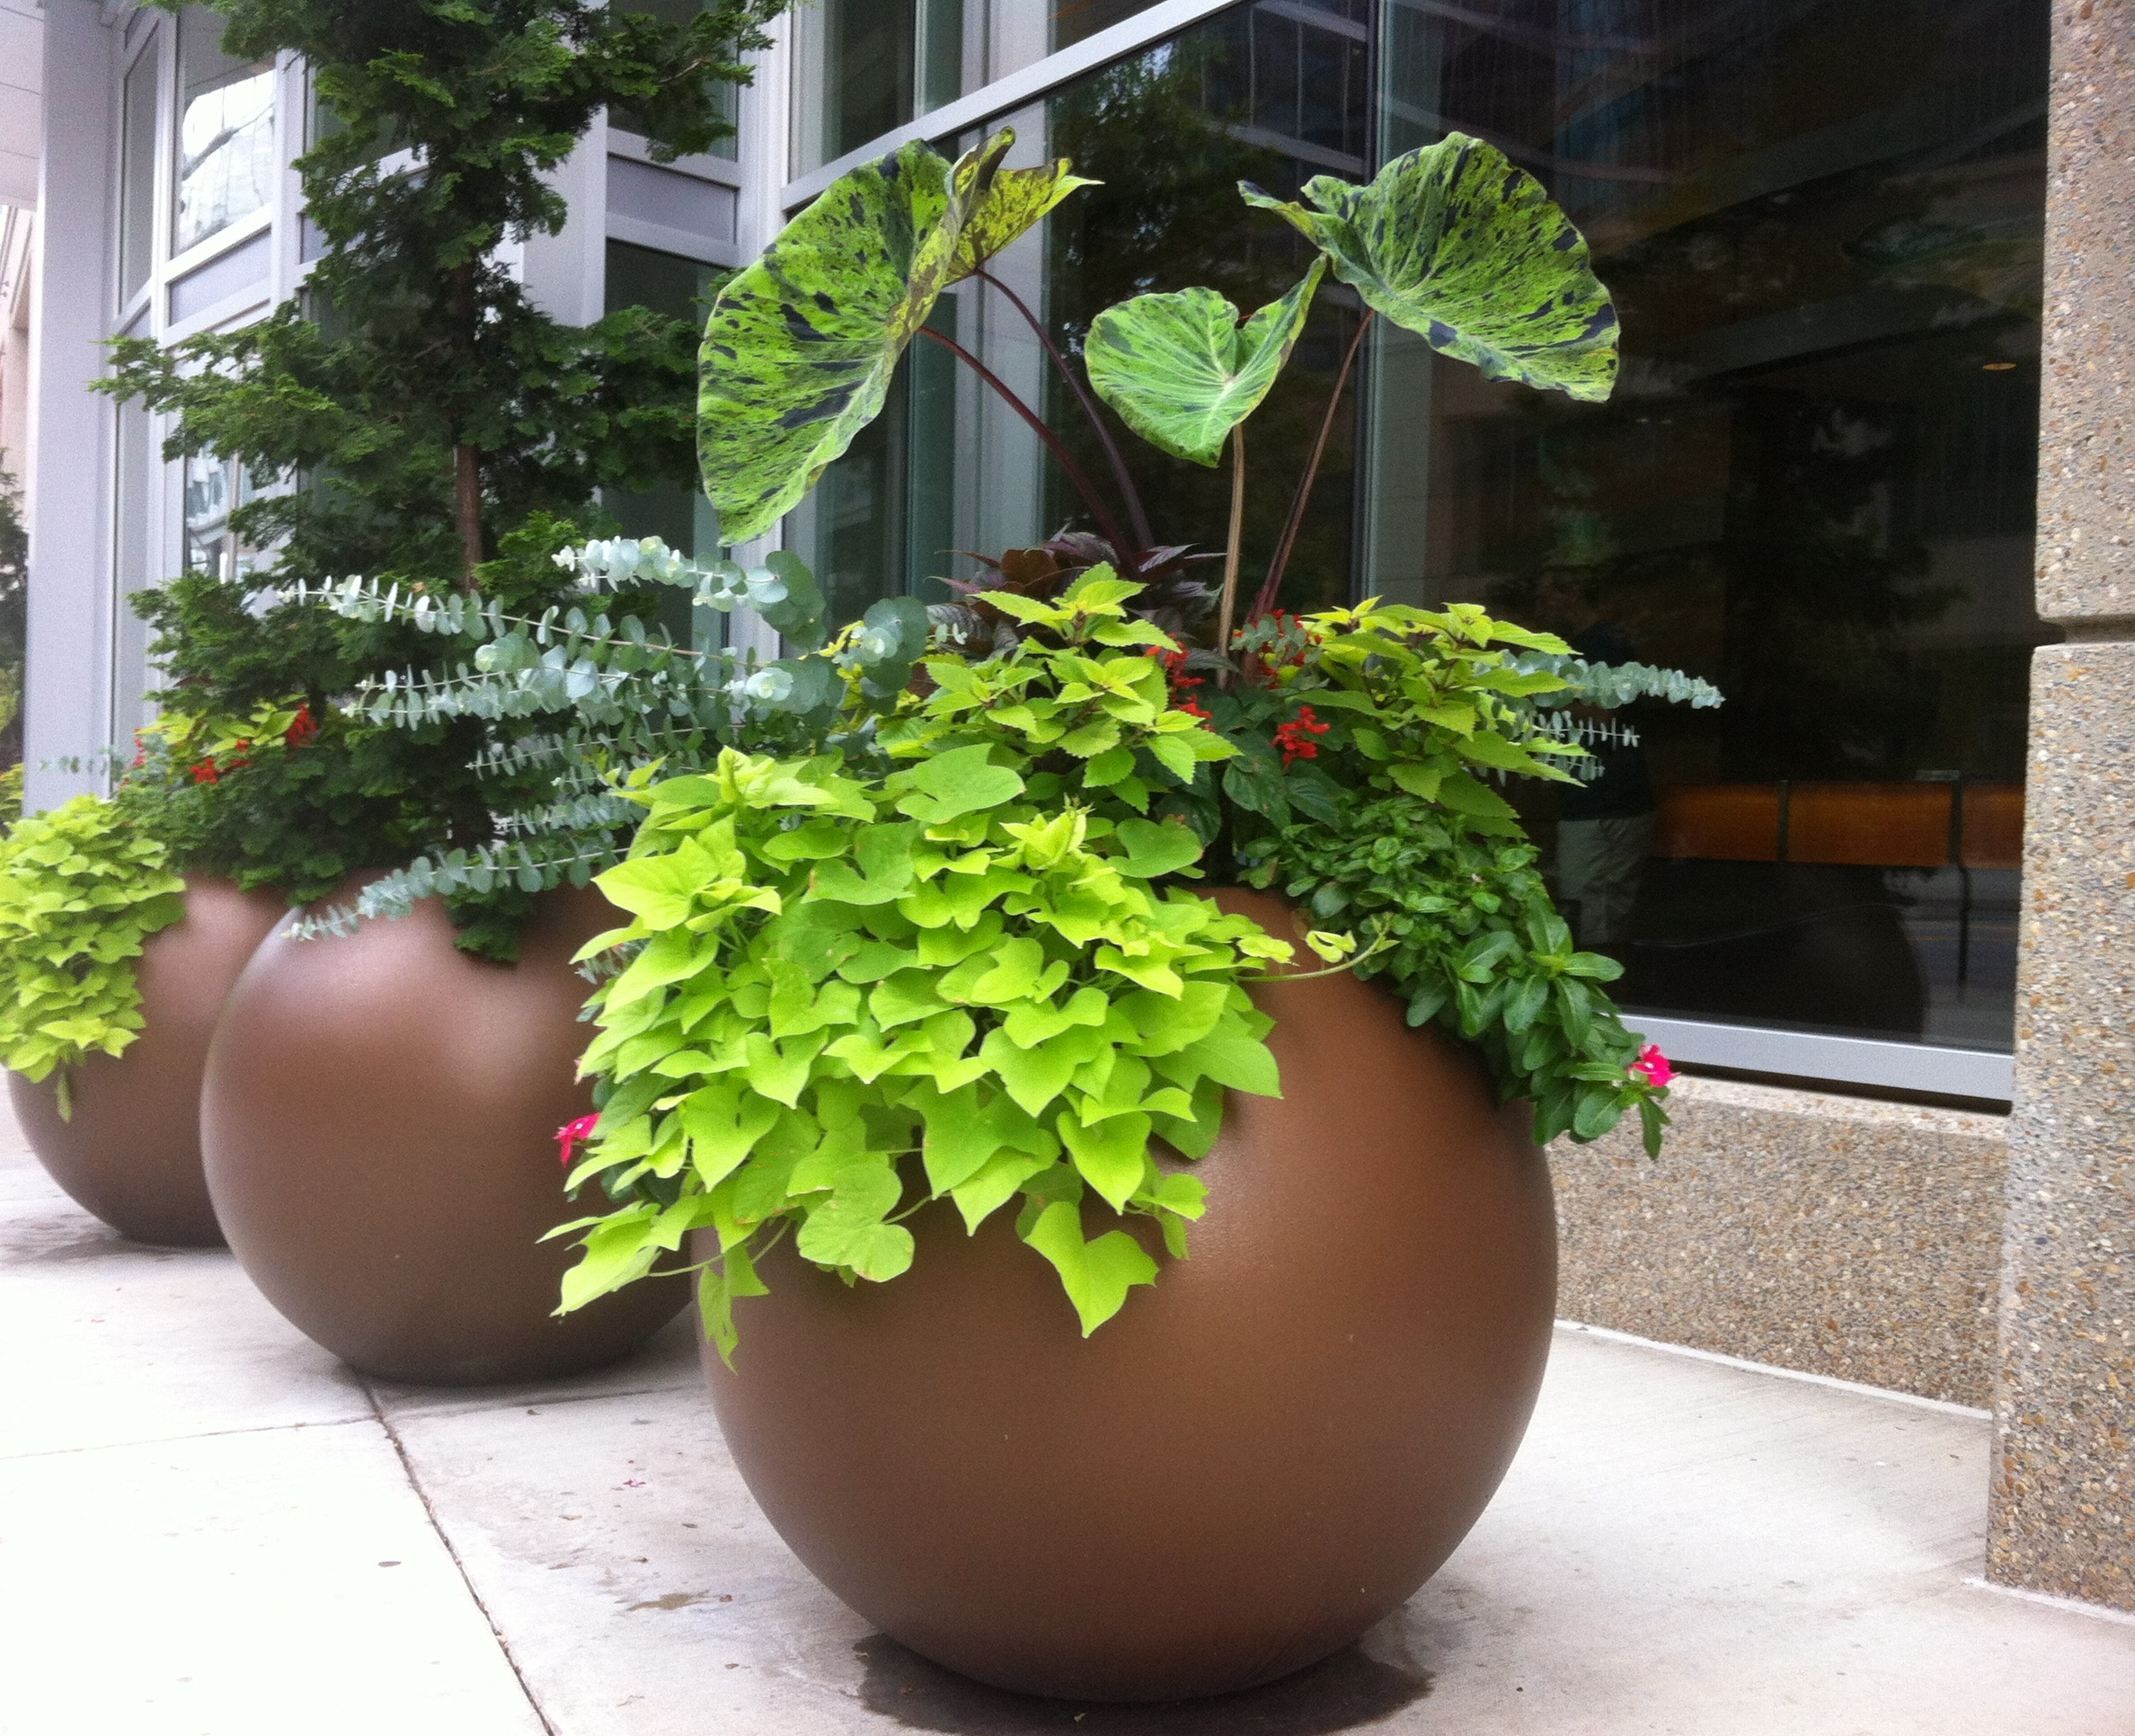 Greenville Planters